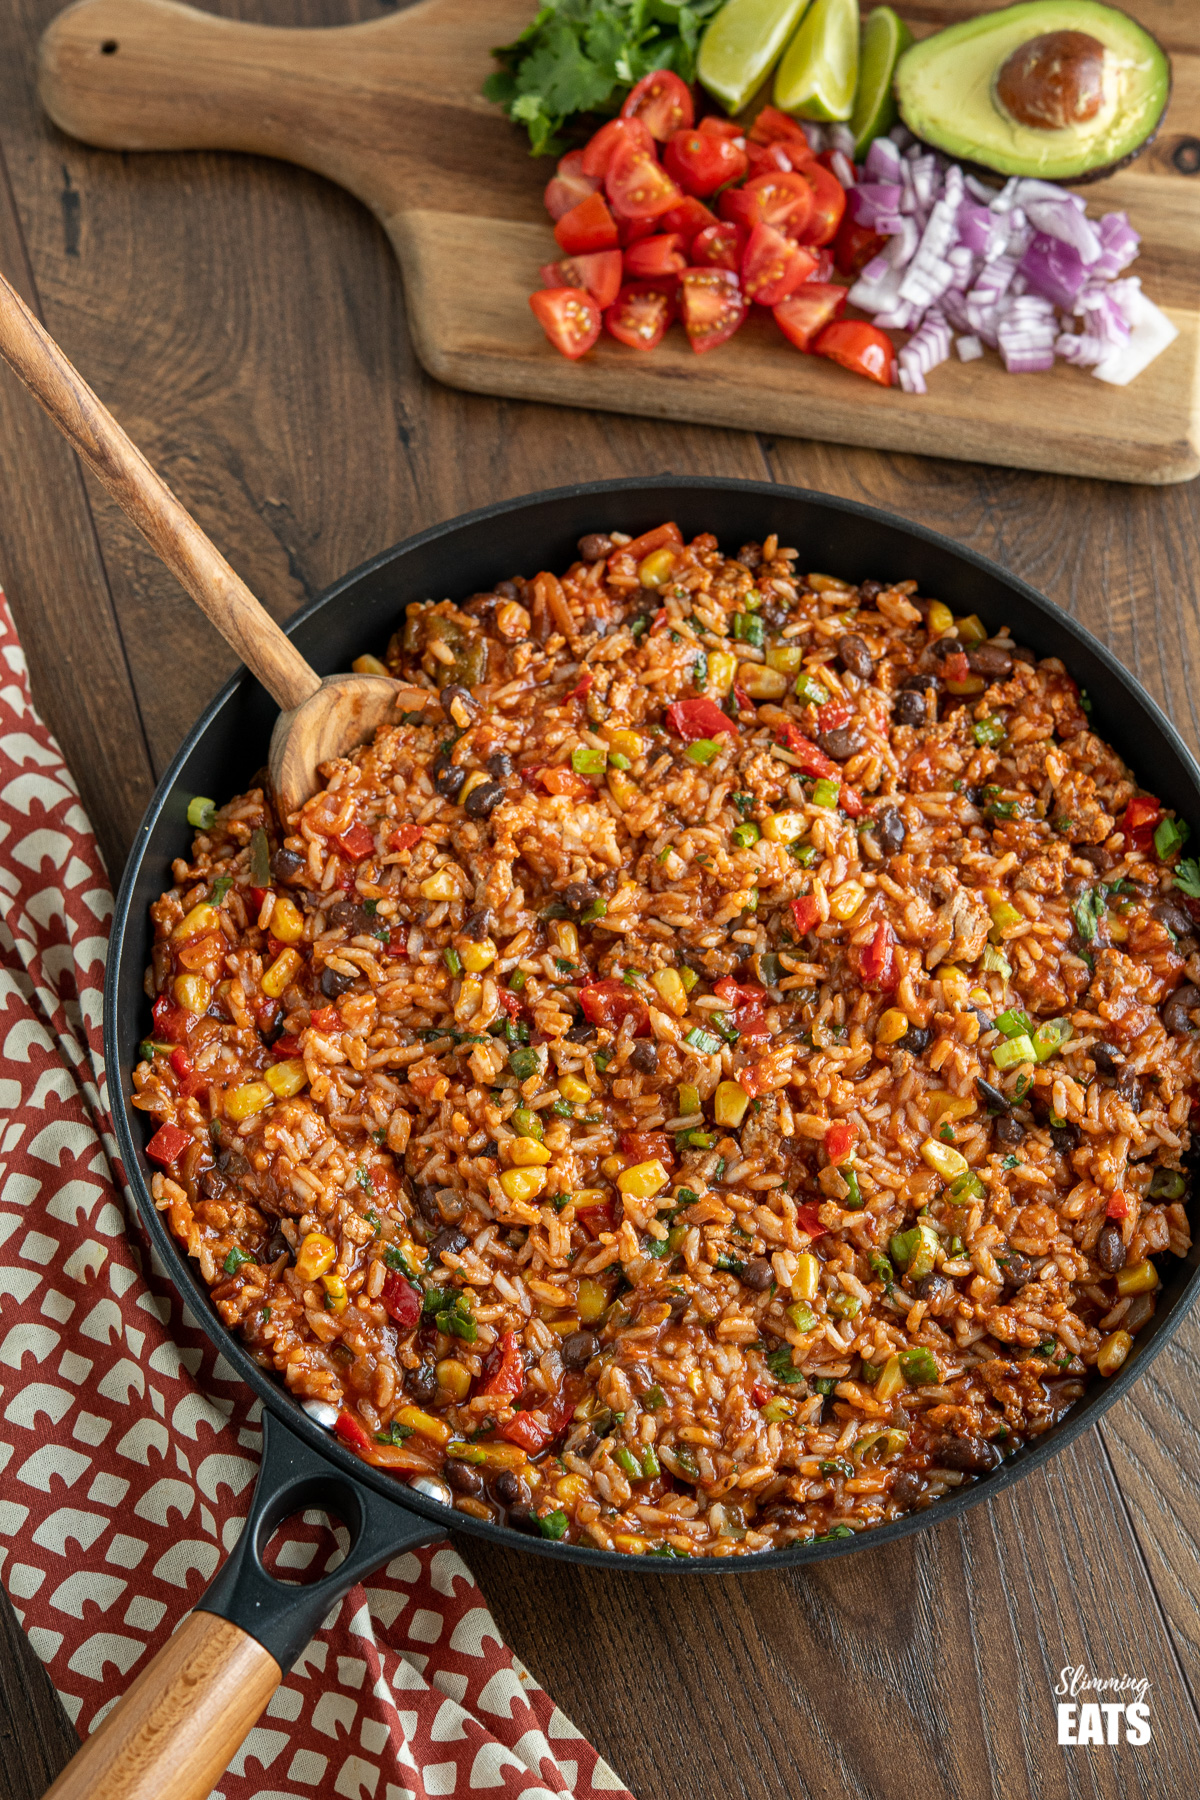 turkey burrito rice in black frying pan with wooden spoon, chopping board with toppings in background